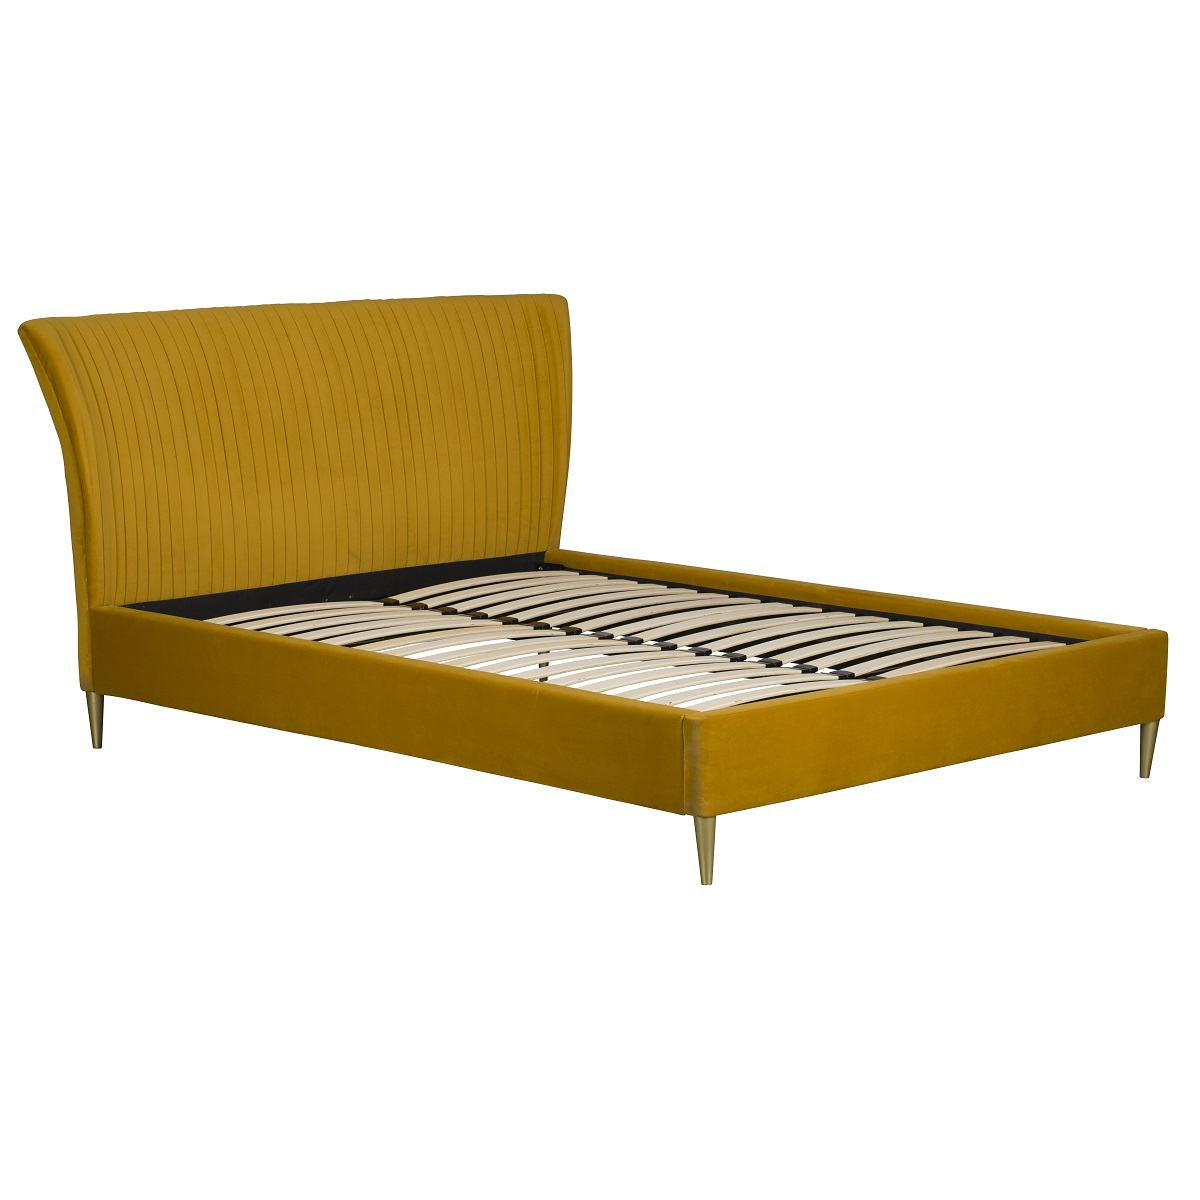 Primrose Yellow Bed Frame